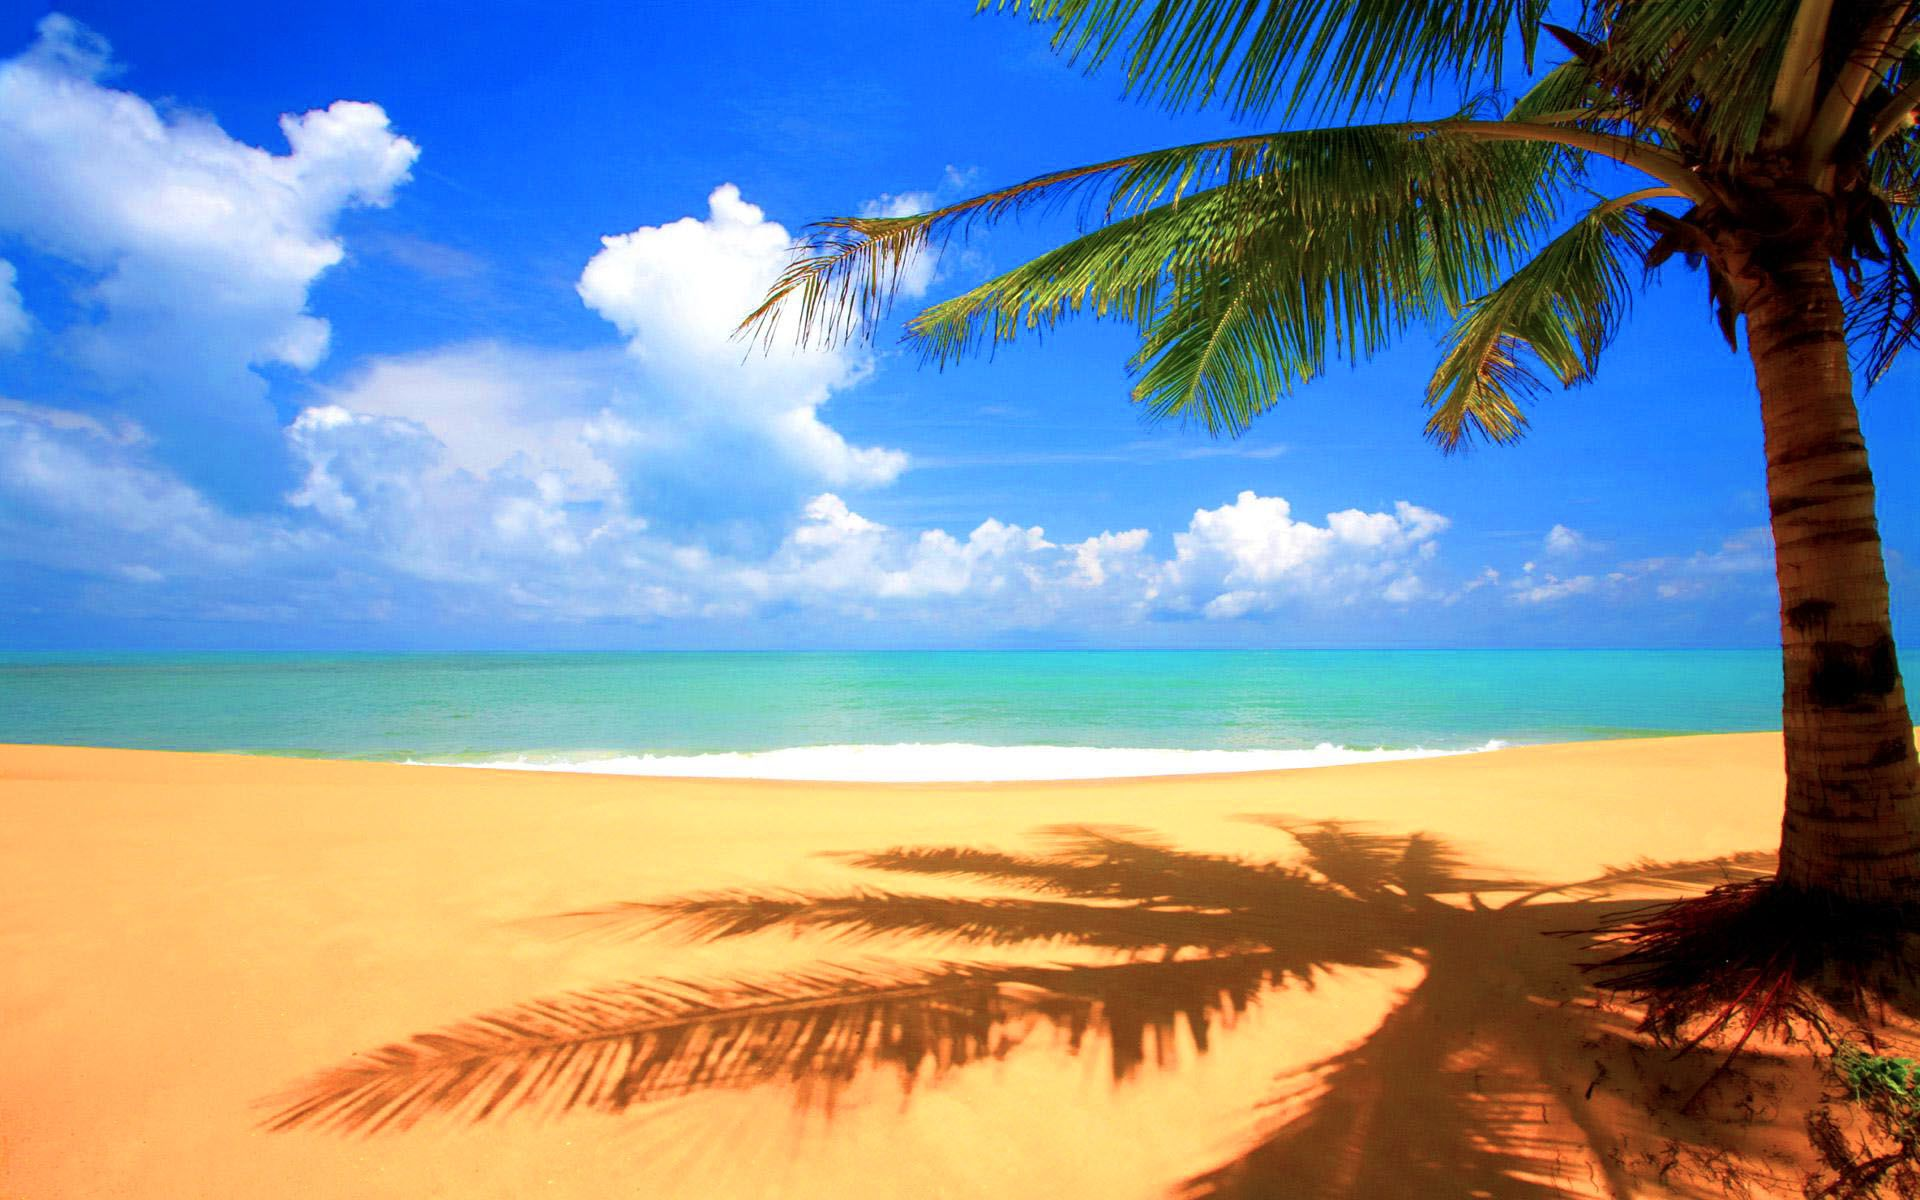 Beach And Palm Trees Background - HD Wallpaper